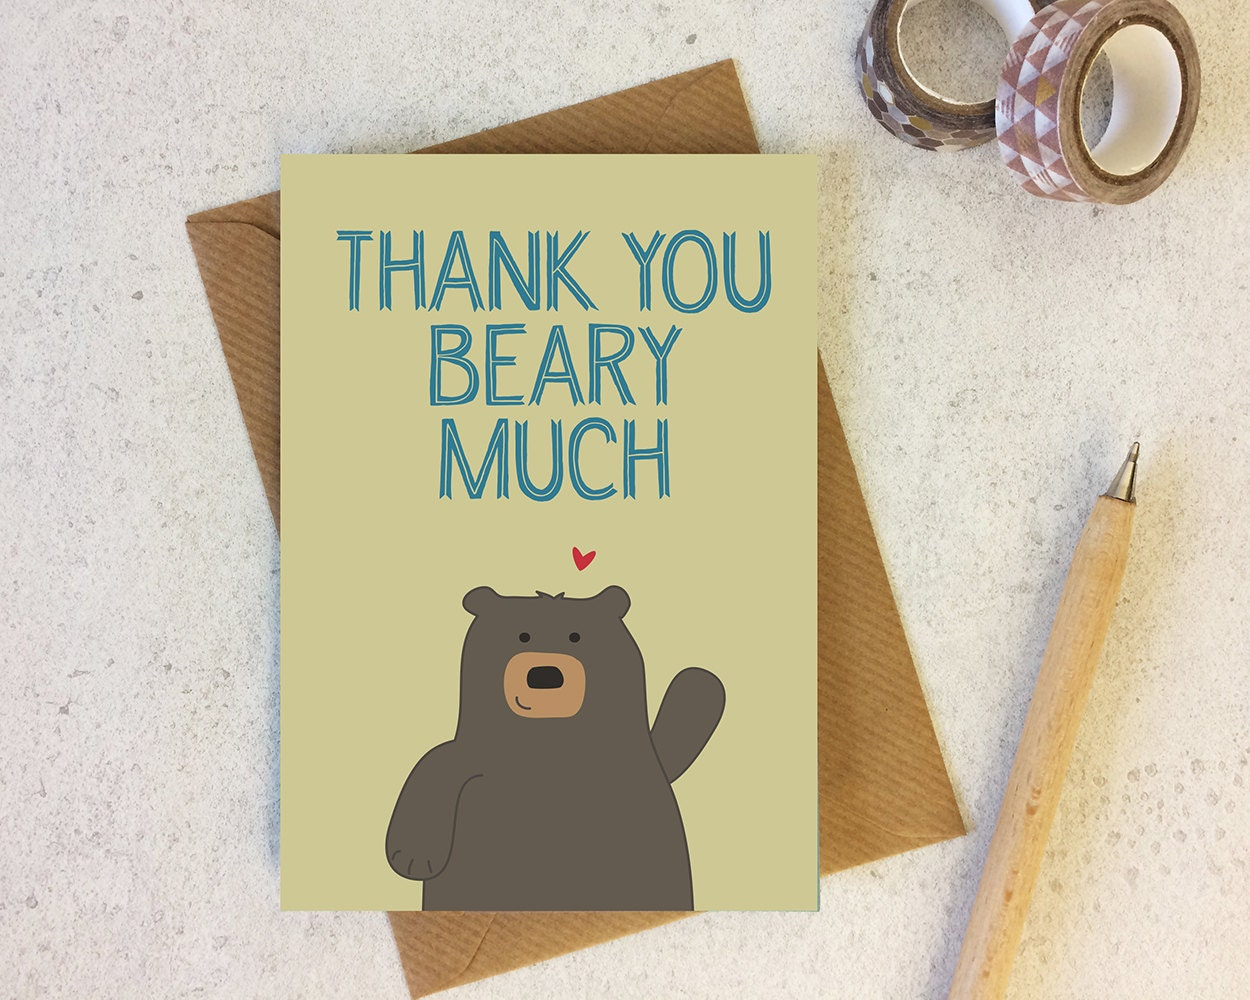 Bear thank you card thank you beary much cute bear zoom kristyandbryce Gallery